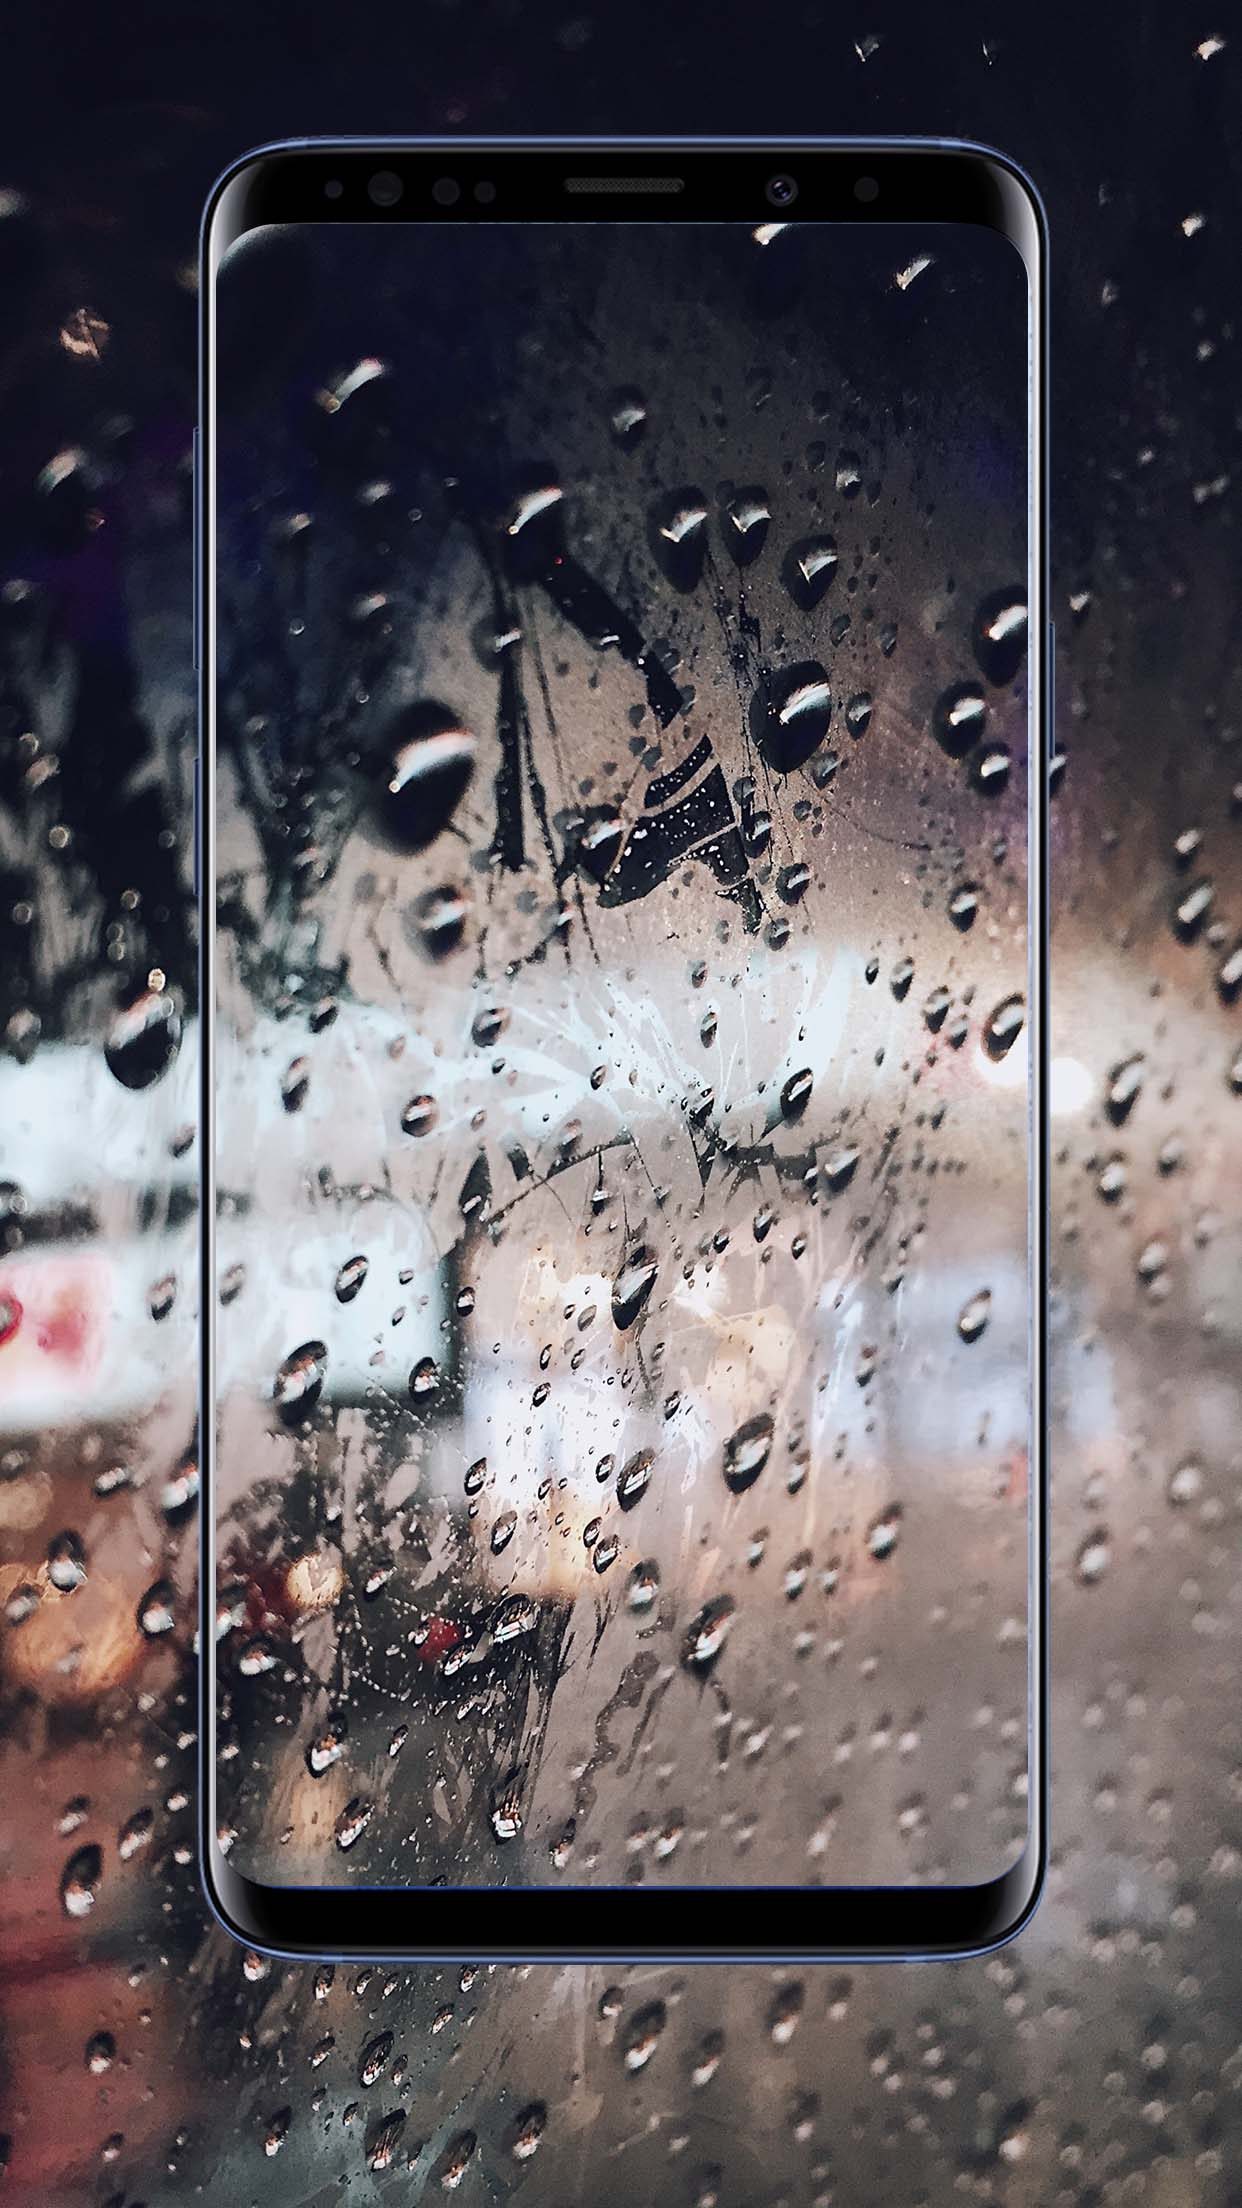 Rain Wallpapers and Backgrounds